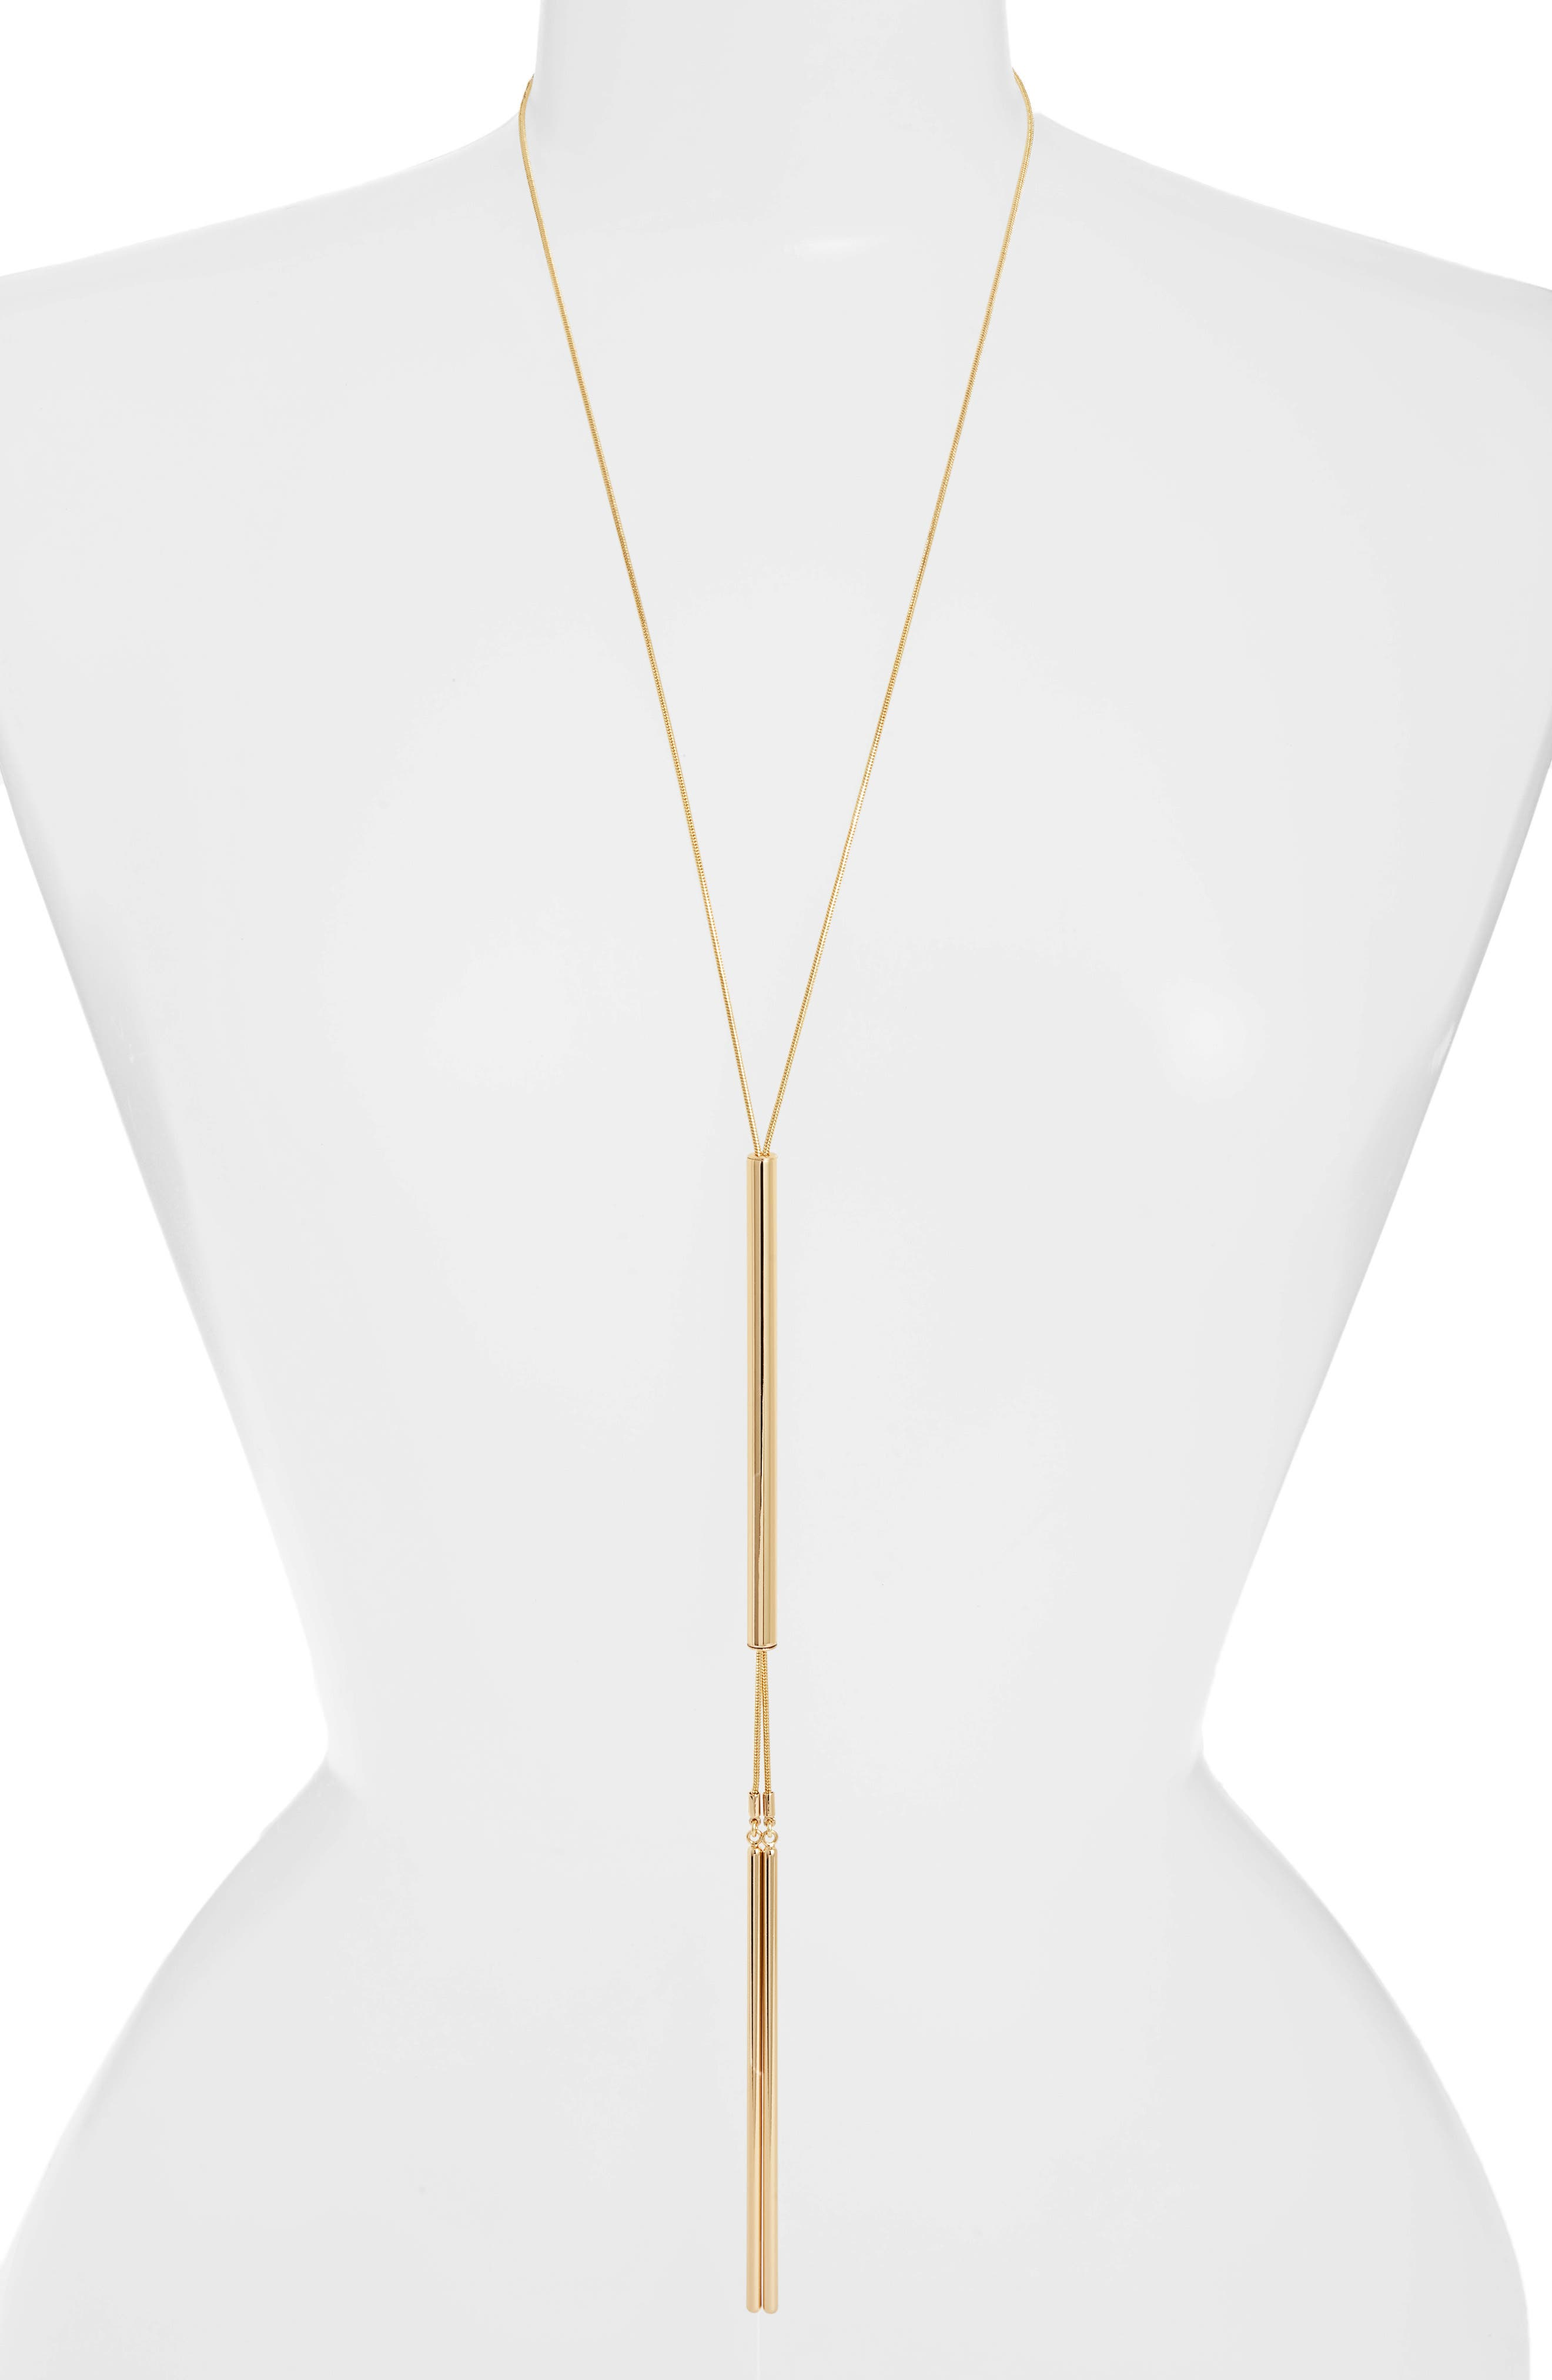 Forme Lariat Necklace,                         Main,                         color, High Polish Gold